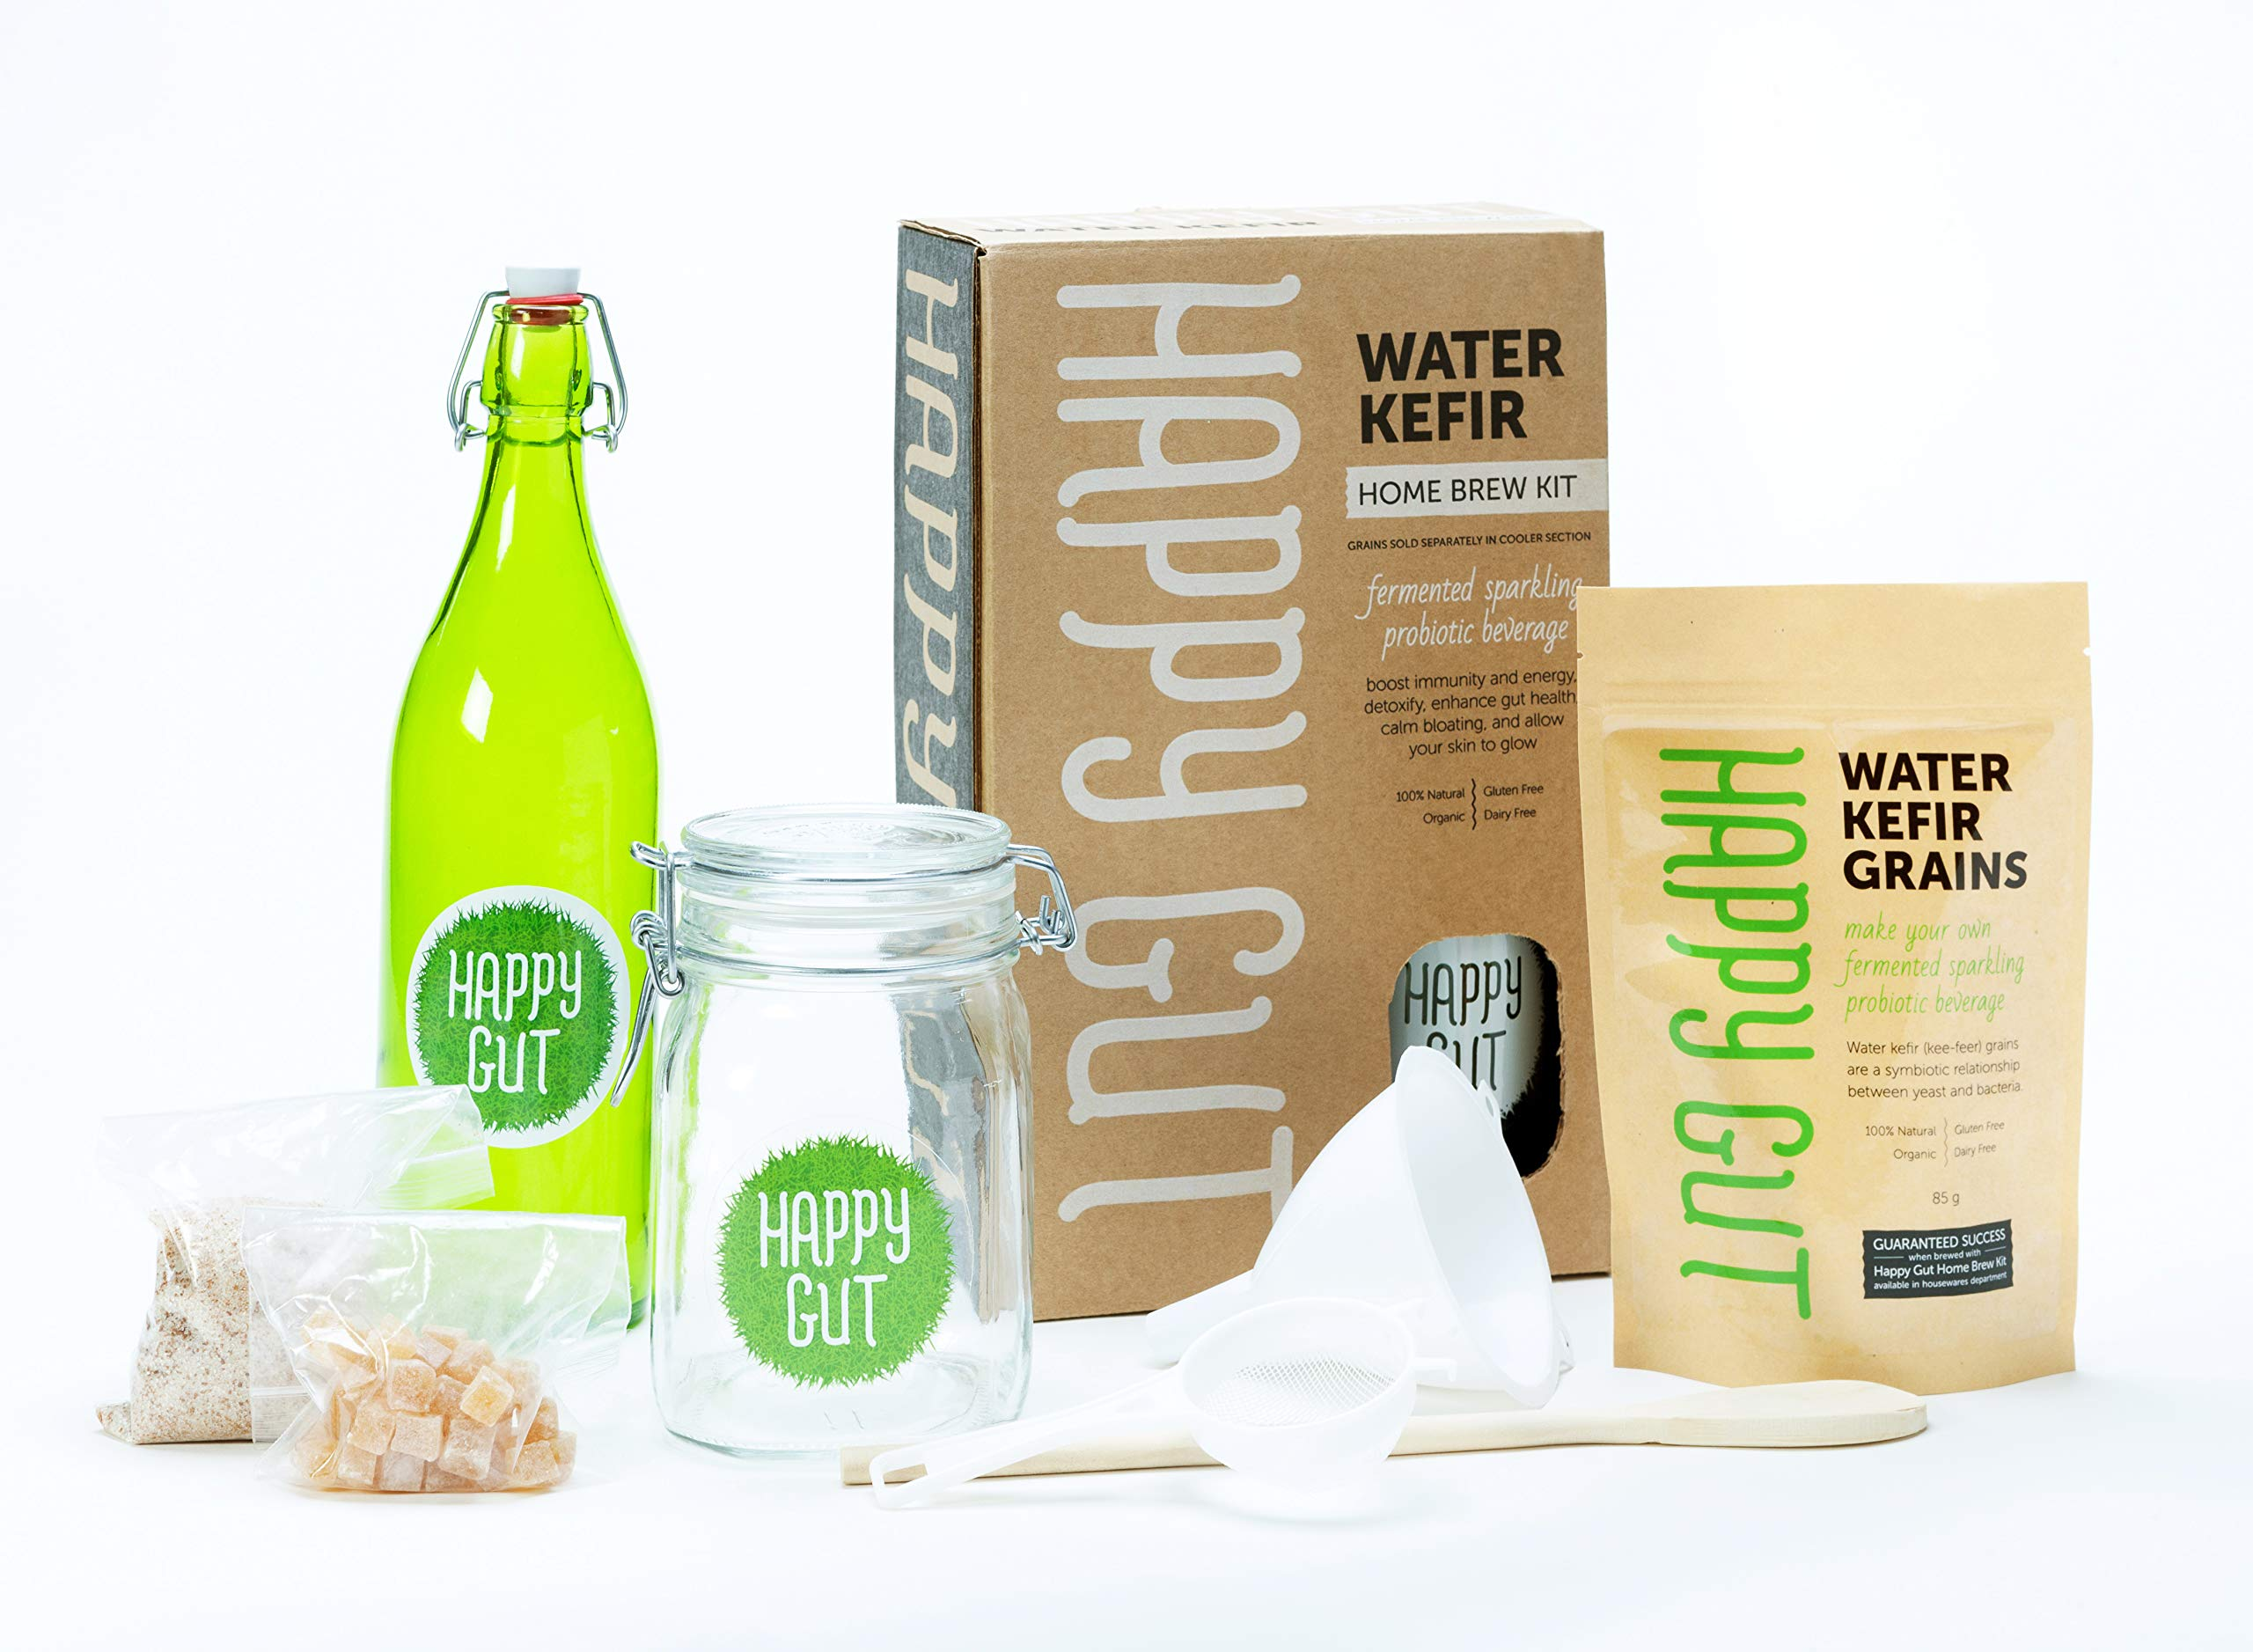 Water KEFIR STARTER KIT By Happy Gut- Includes water kefir grains, fermentation jar, swivel-top bottle, wooden spoon, strainer, and funnel. Use this kit to create your own organic, good for your healt by Happy Gut Pro